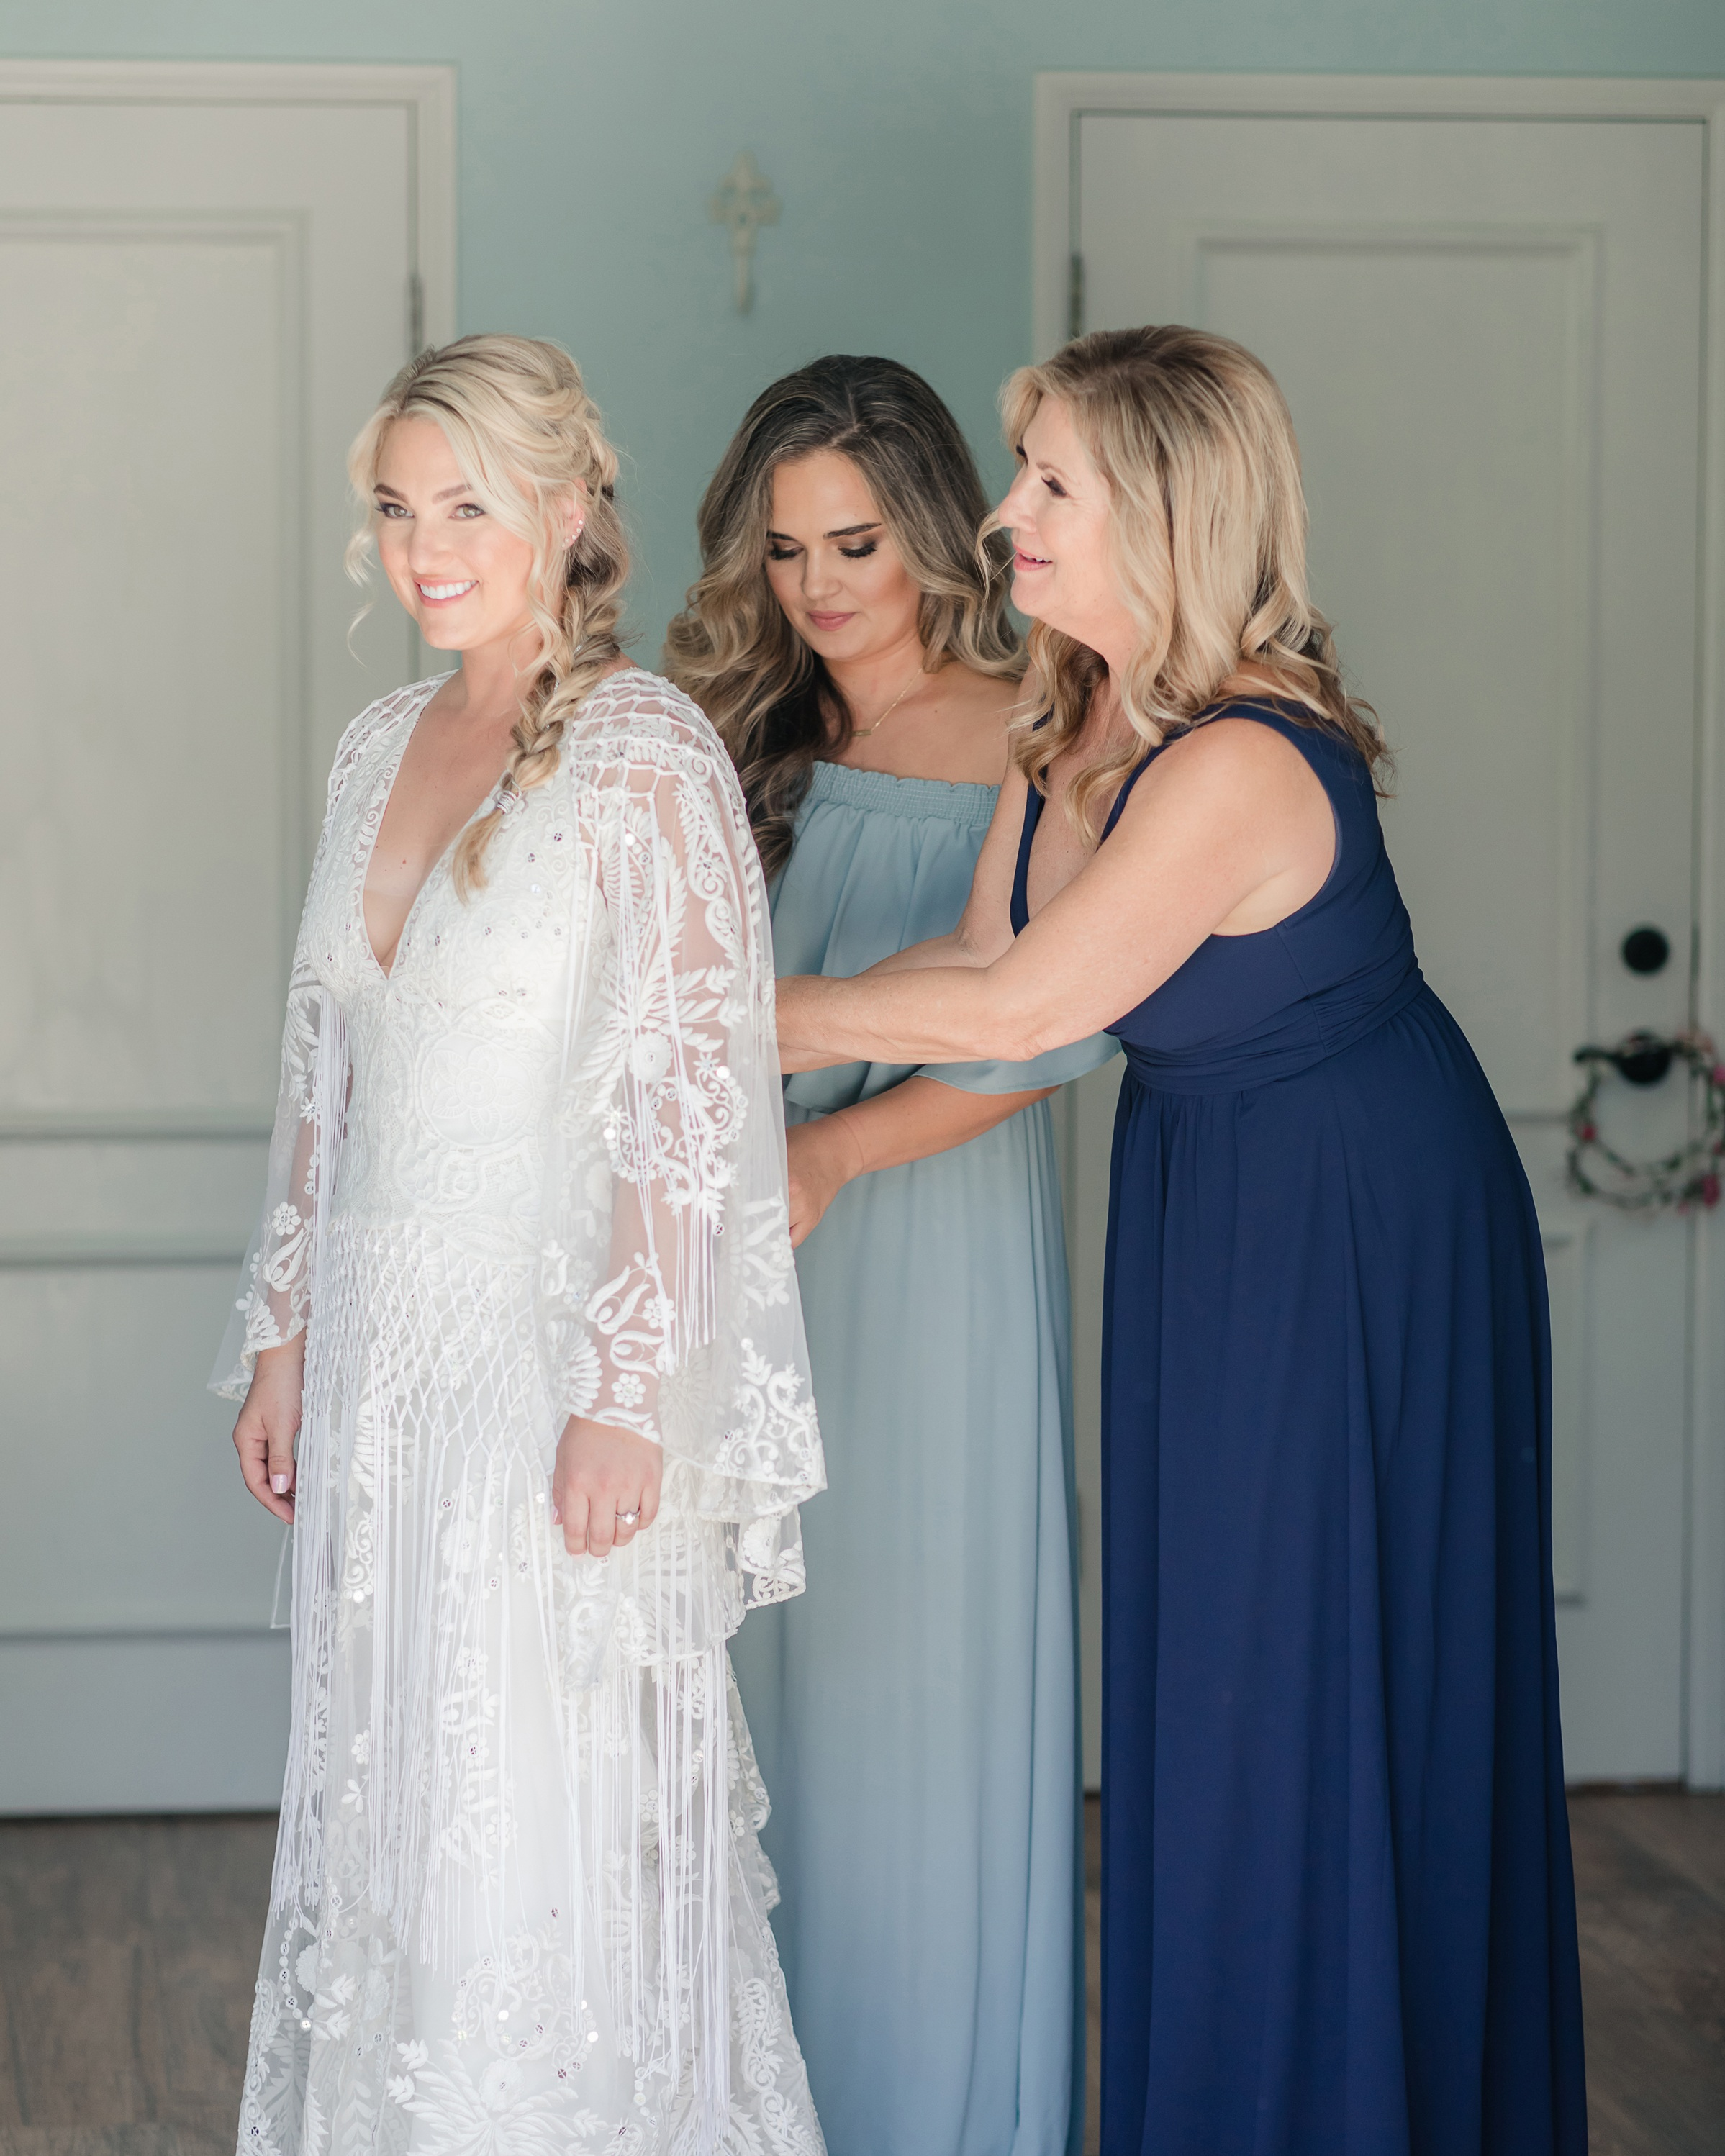 Mother of the bride and matron of honor helping this Malibu bride into her dress